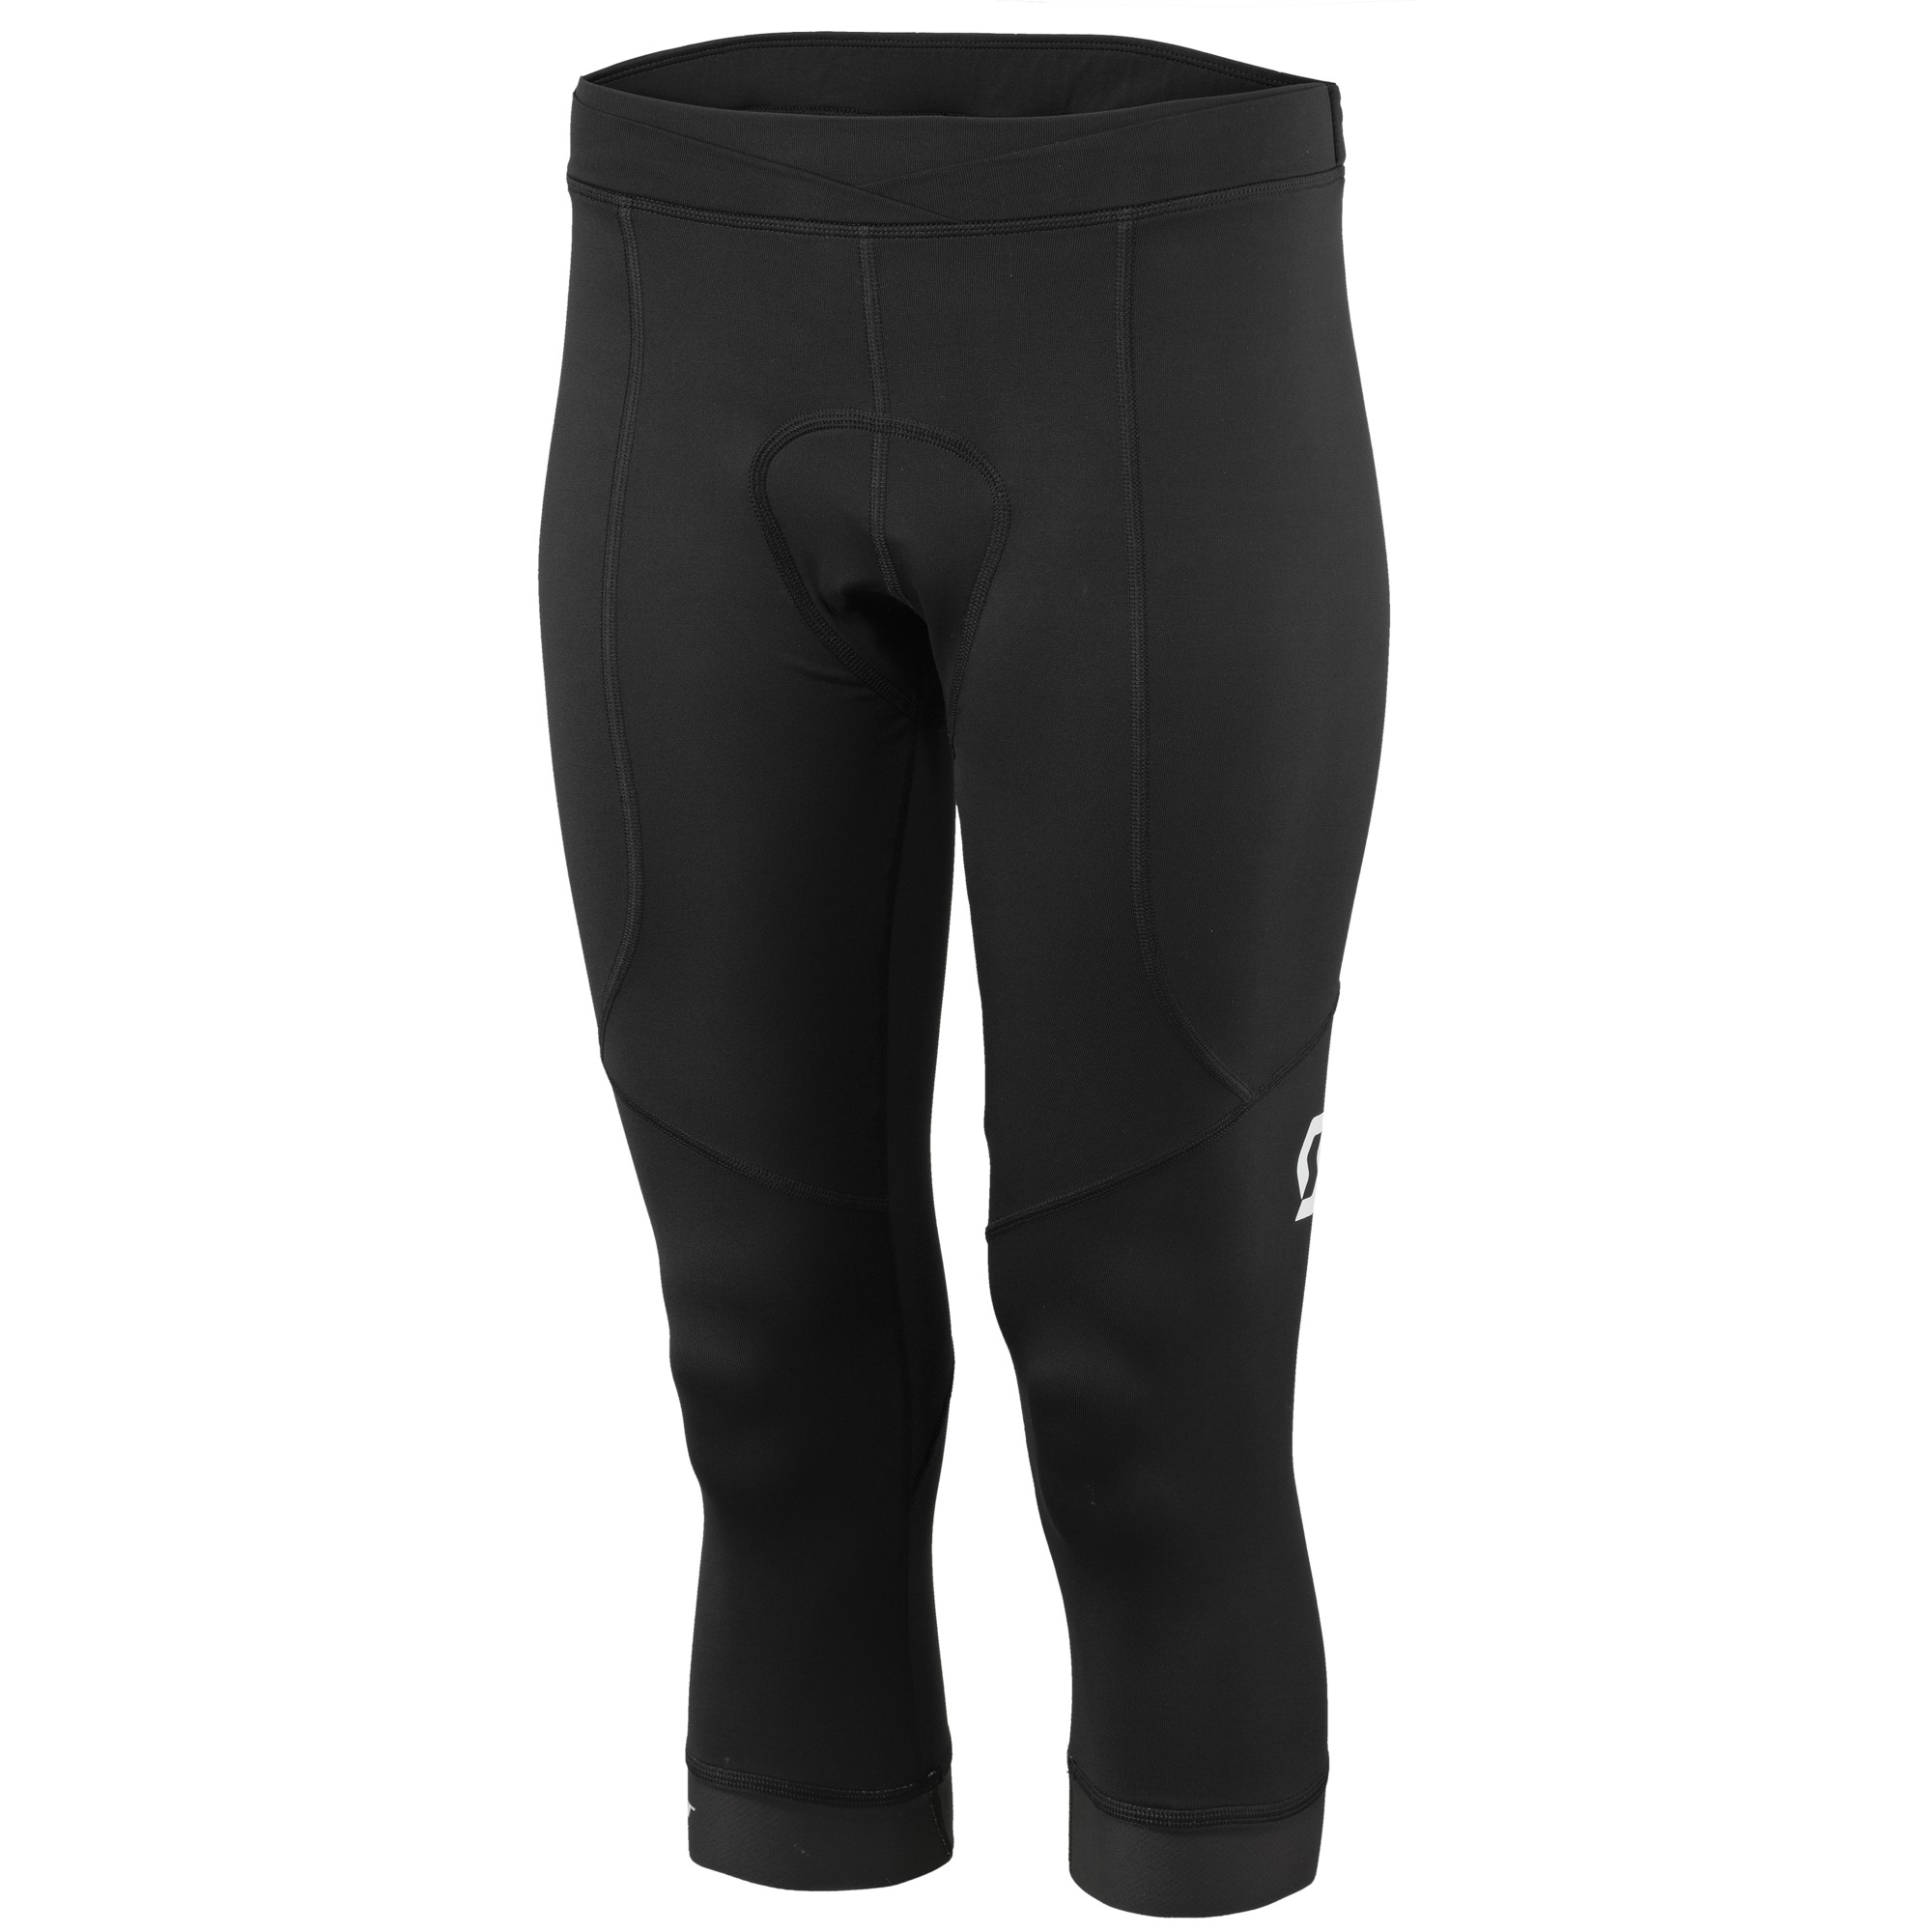 SCOTT Endurance 10 +++ Women's Knickers